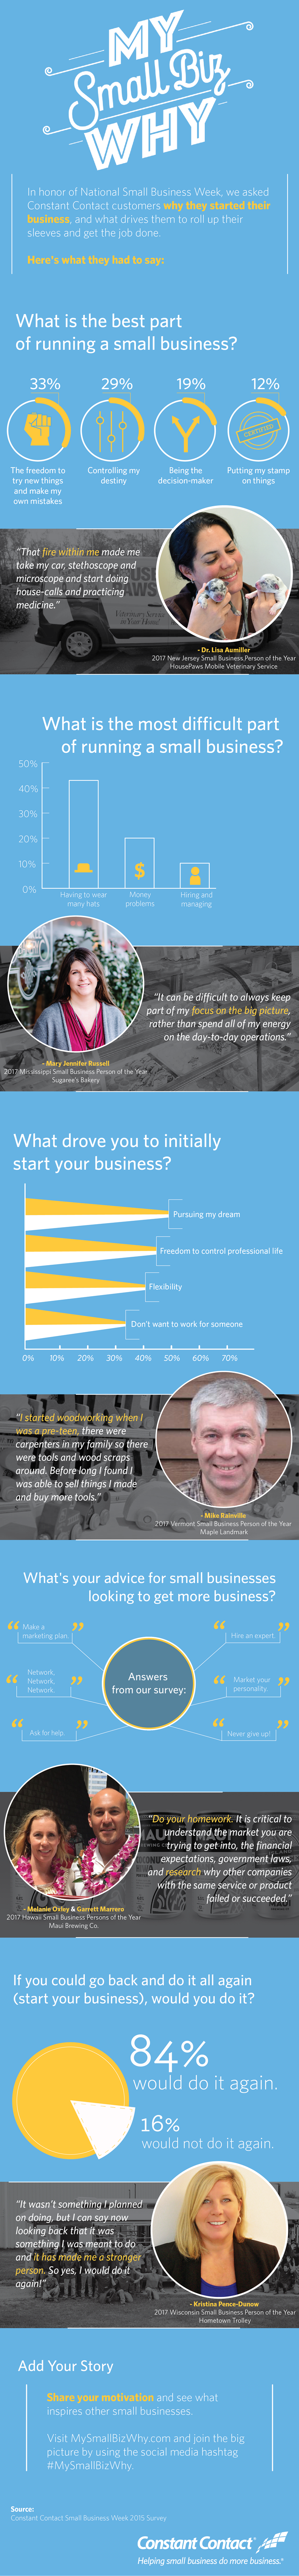 My Small Biz Why Infographic